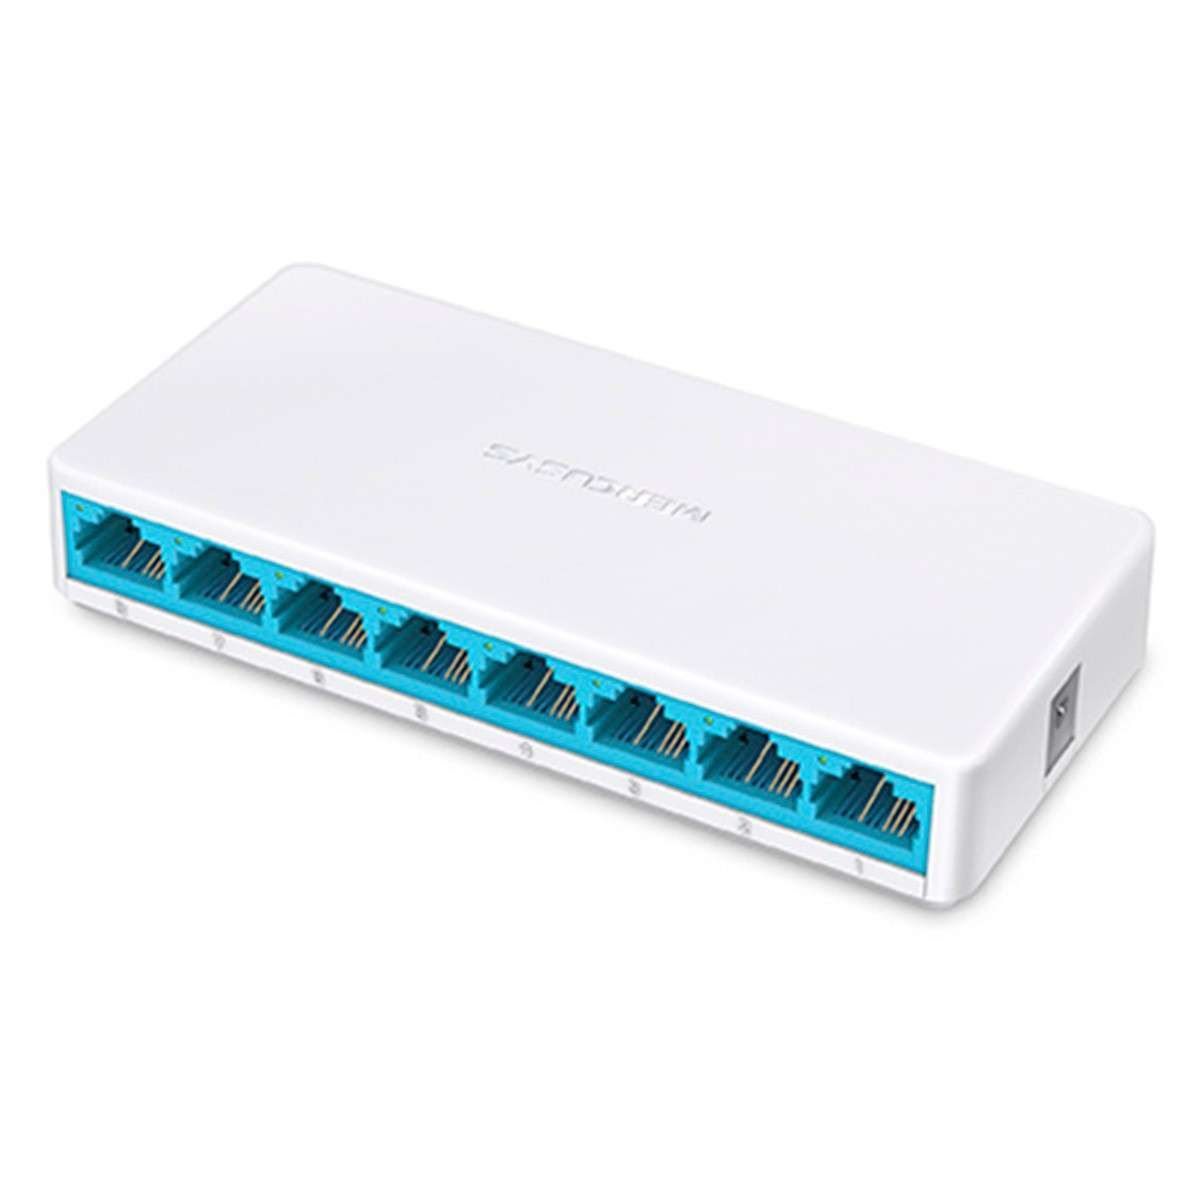 Switch 8 Portas Mercusys MS108 10/100 Mbps - MCS0005